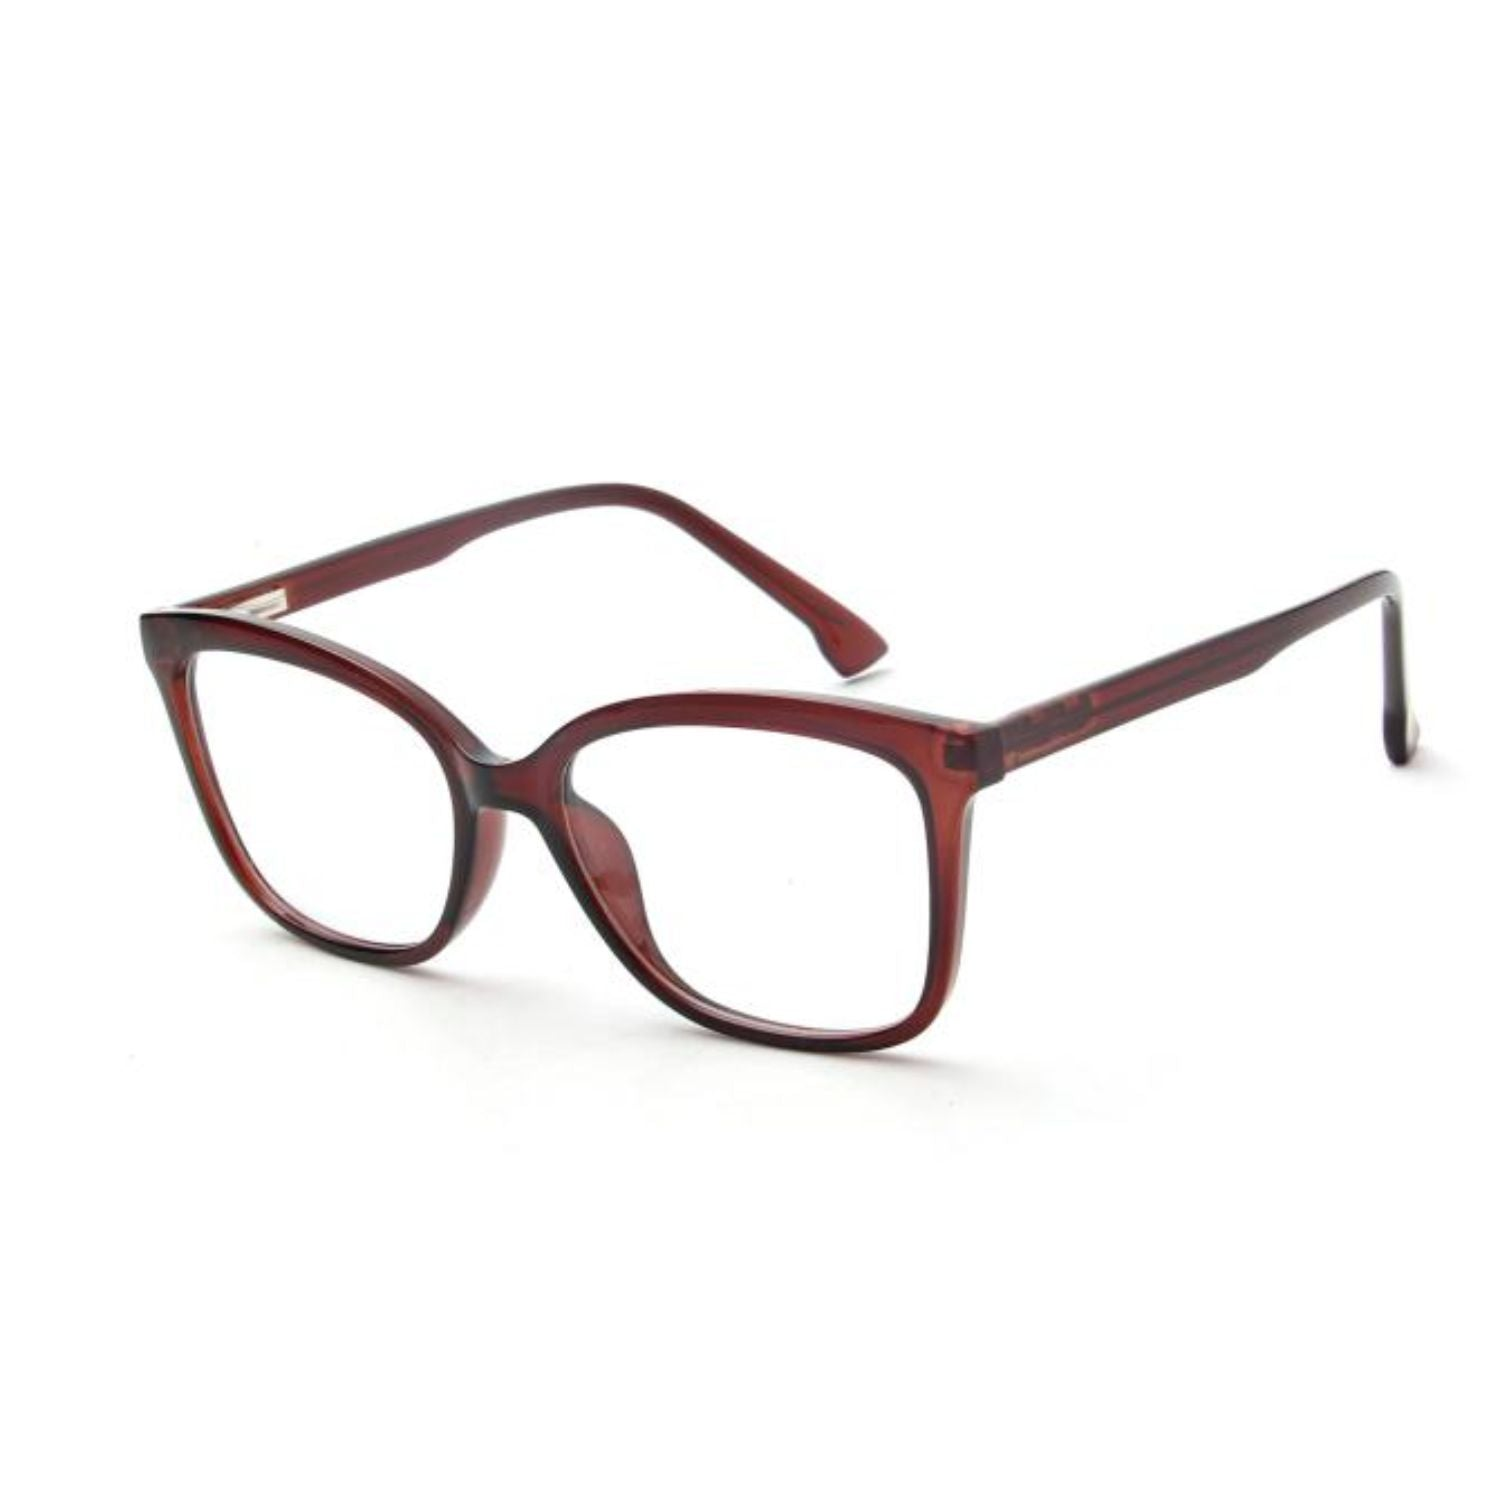 OTR31 - Classic Fashion Square Optical Glasses - Iris Fashion Inc. | Wholesale Sunglasses and Glasses